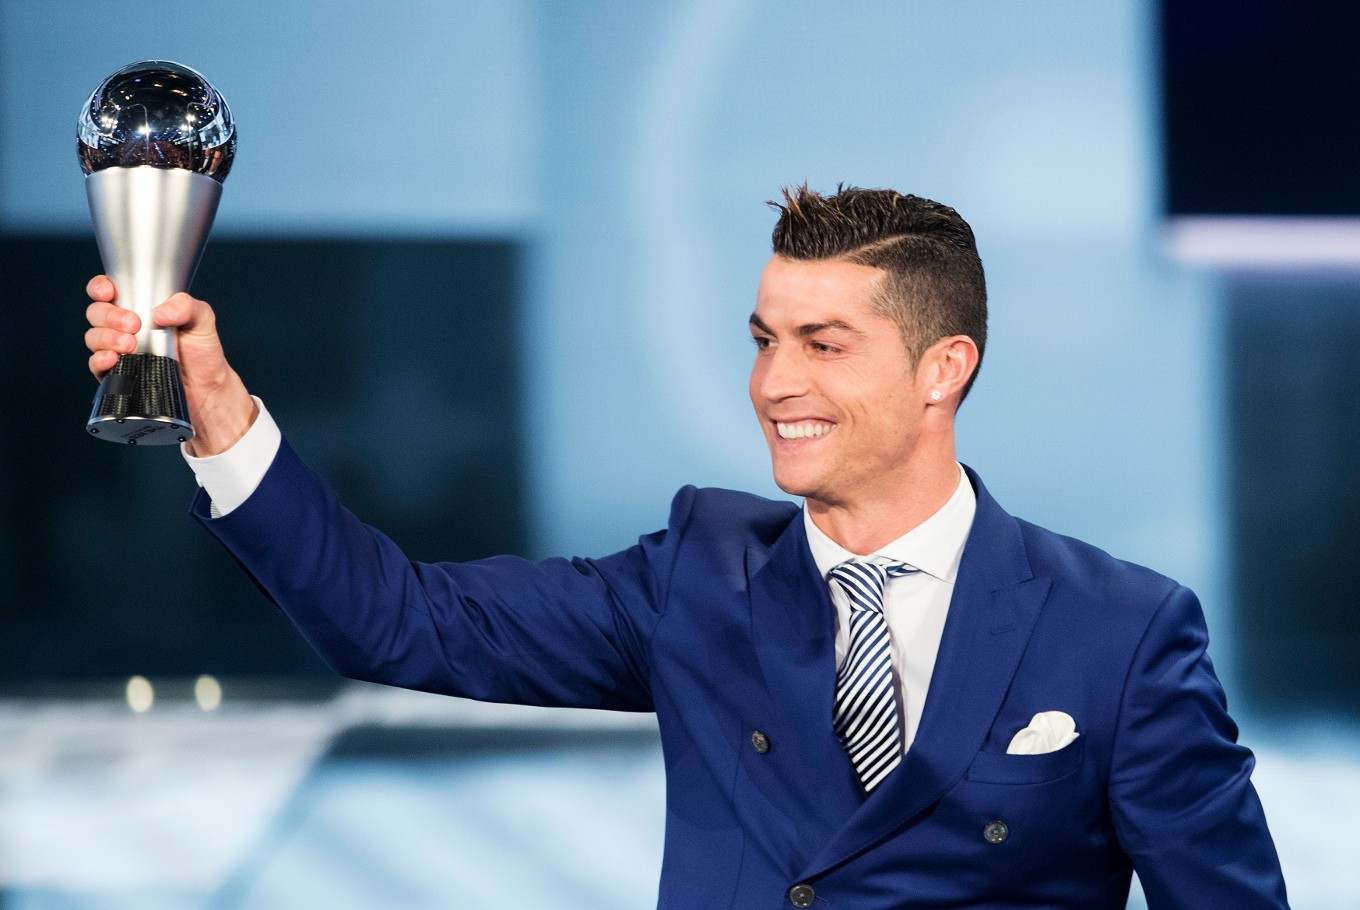 Cristiano Ronaldo wins FIFA best player award for 4th time